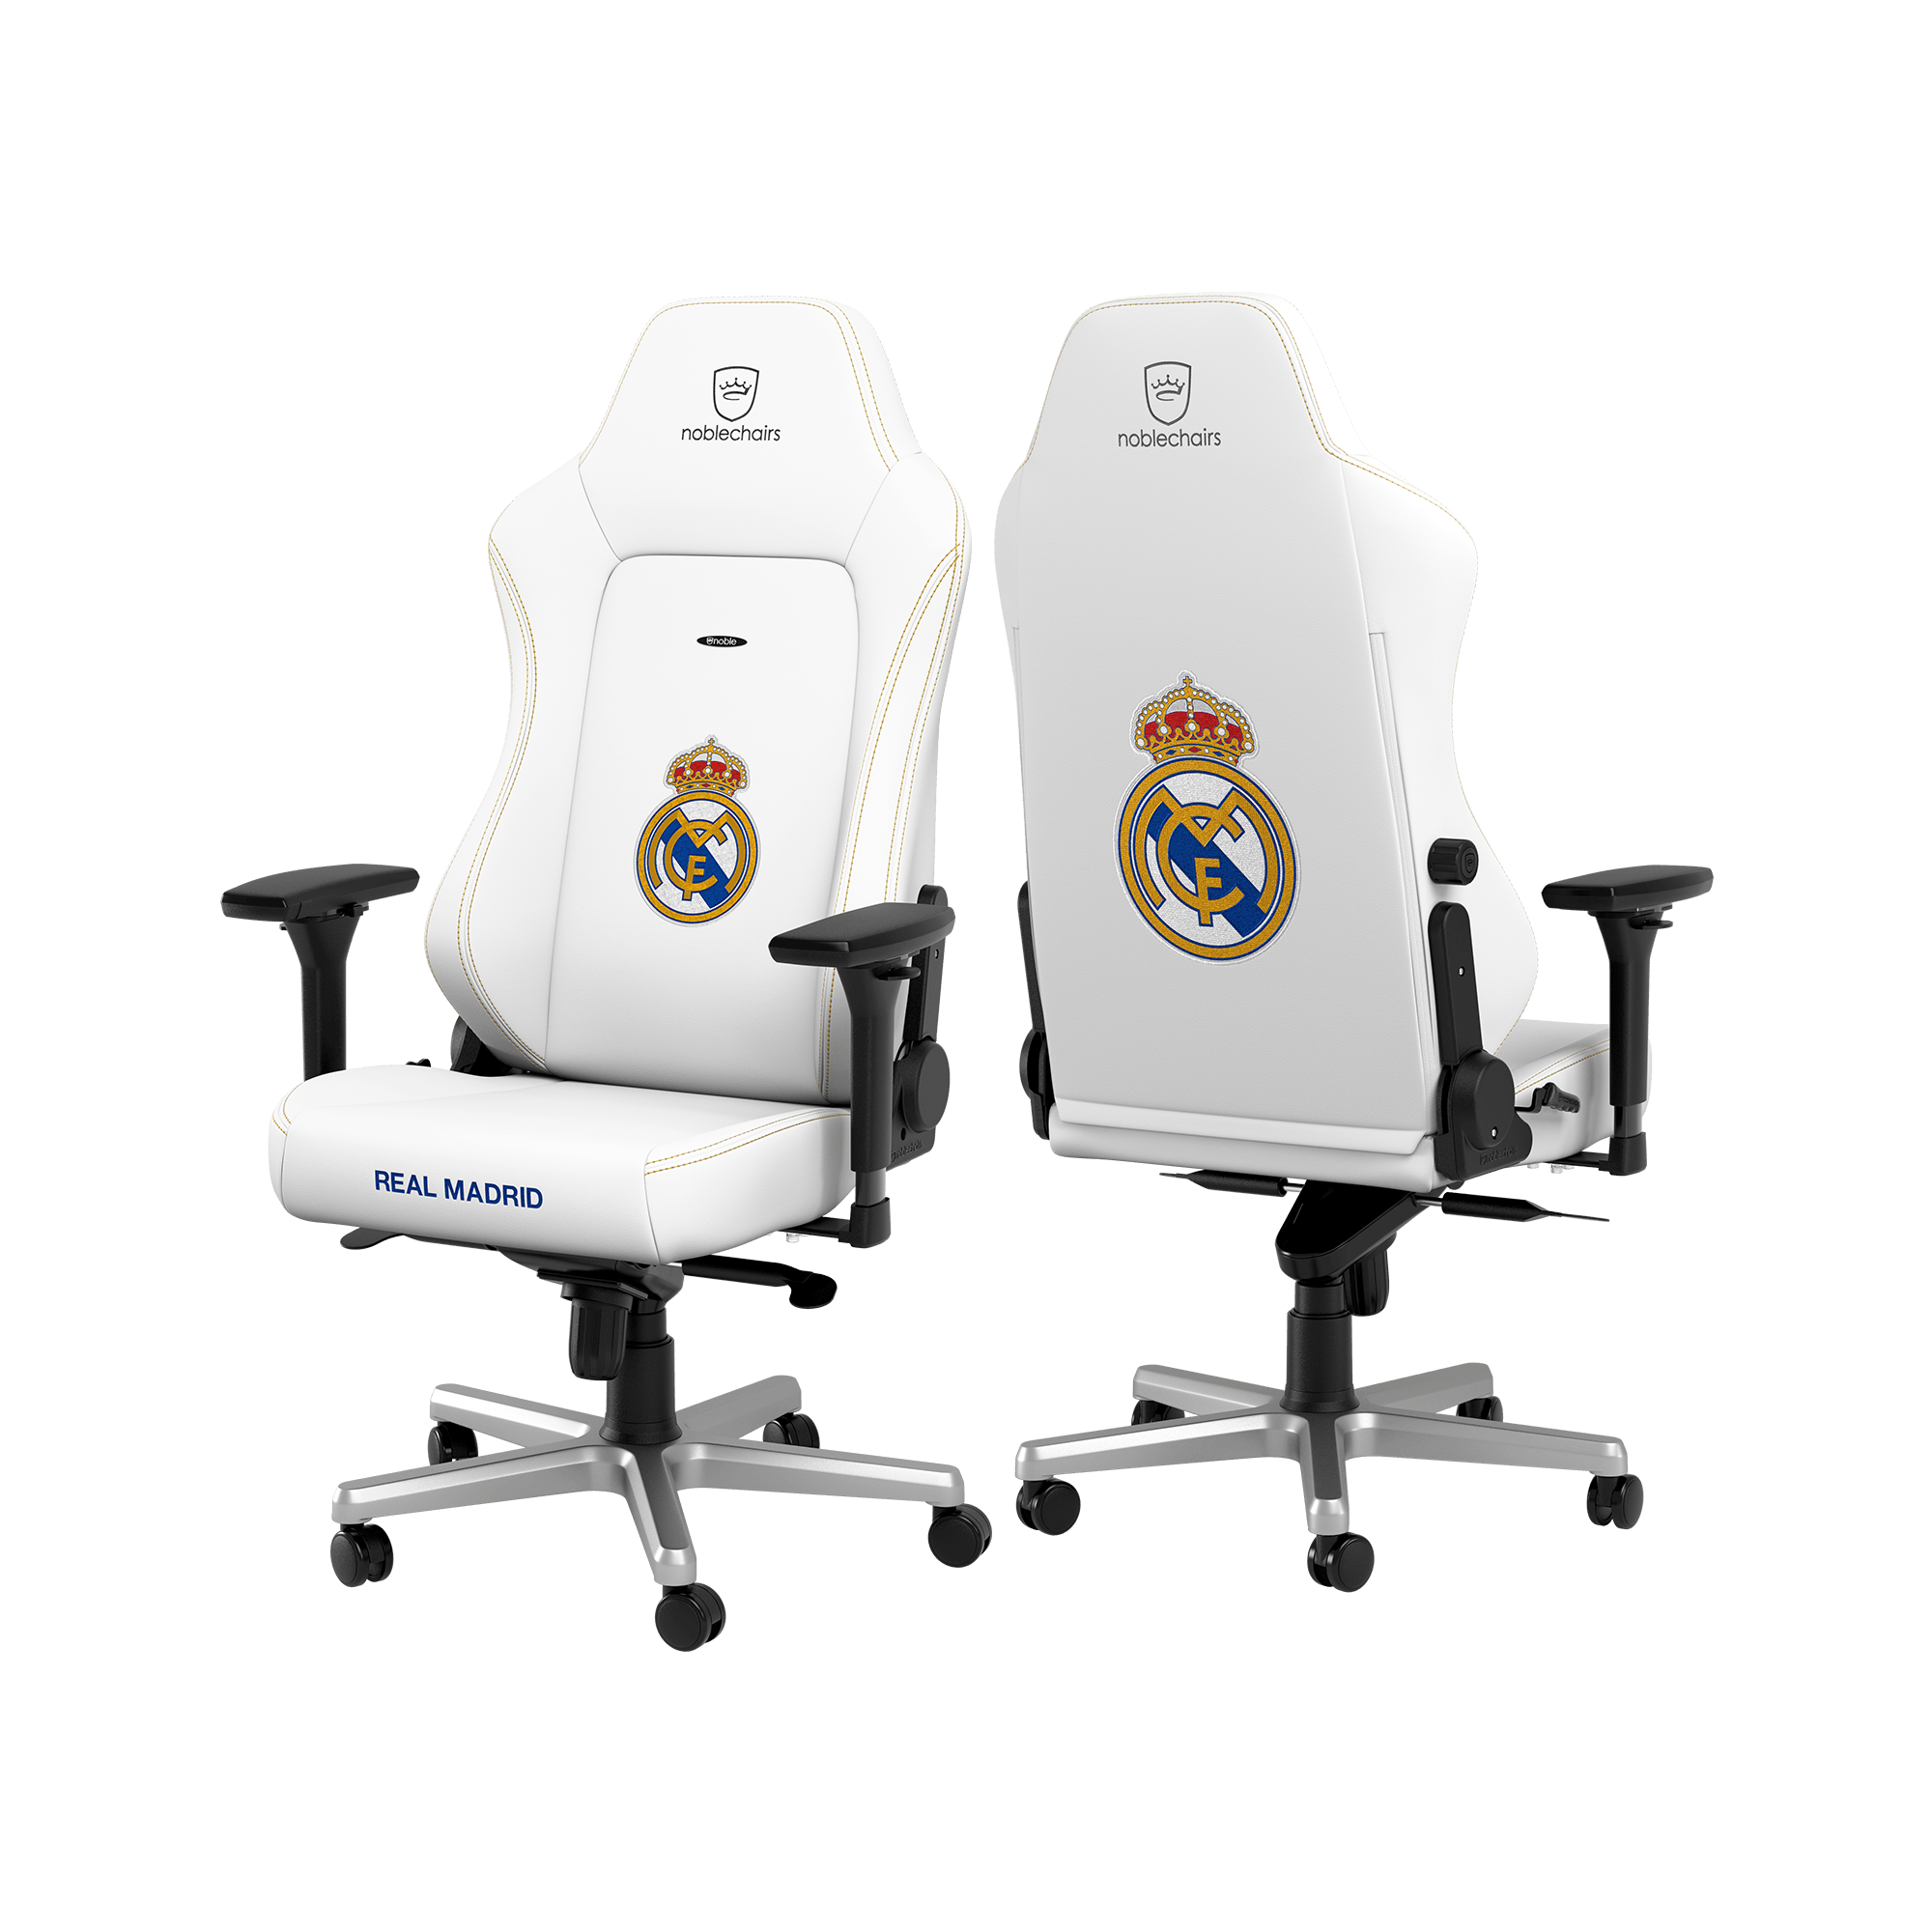 Noblechairs - HERO Real Madrid Edition